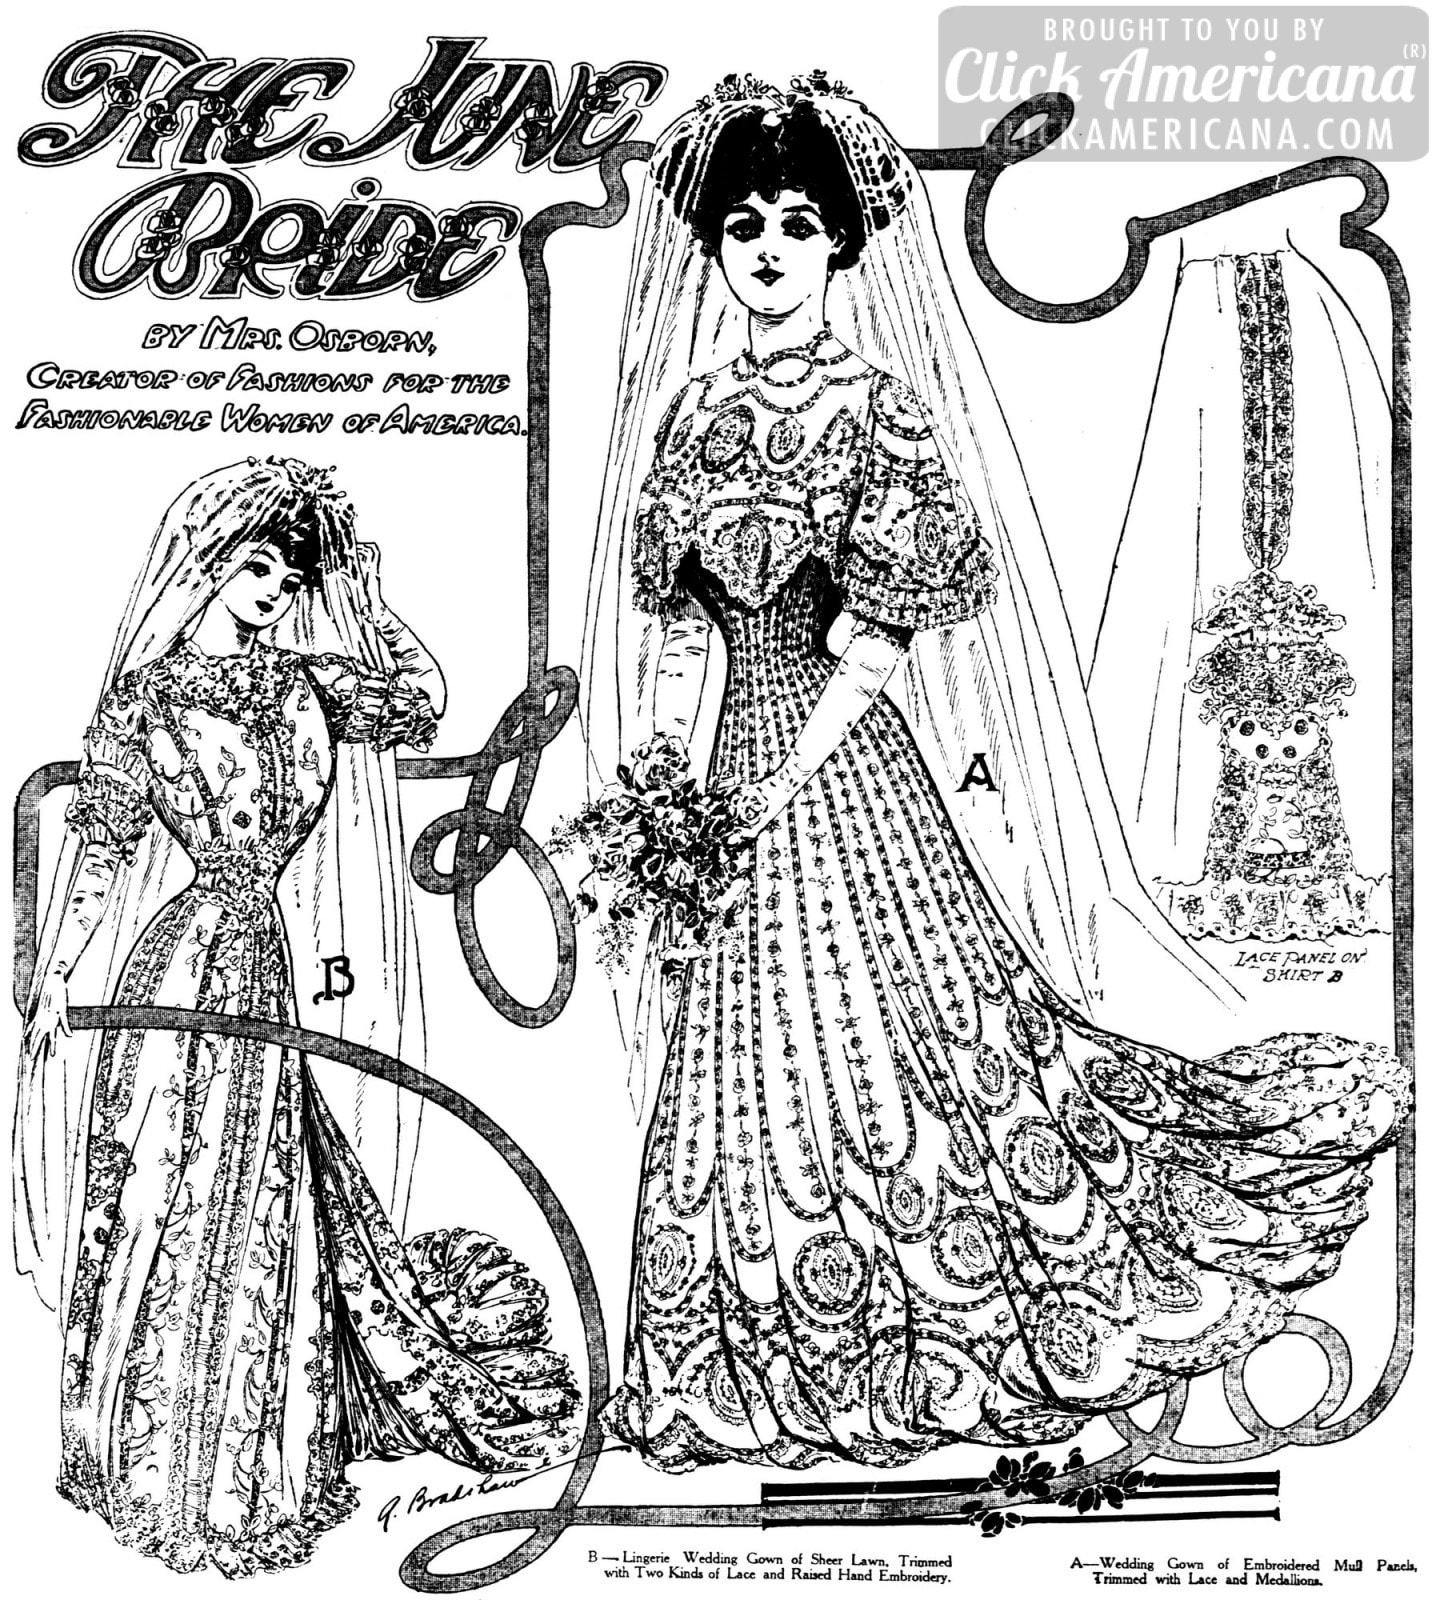 Two fashionable antique wedding gowns from 1906 - Click Americana